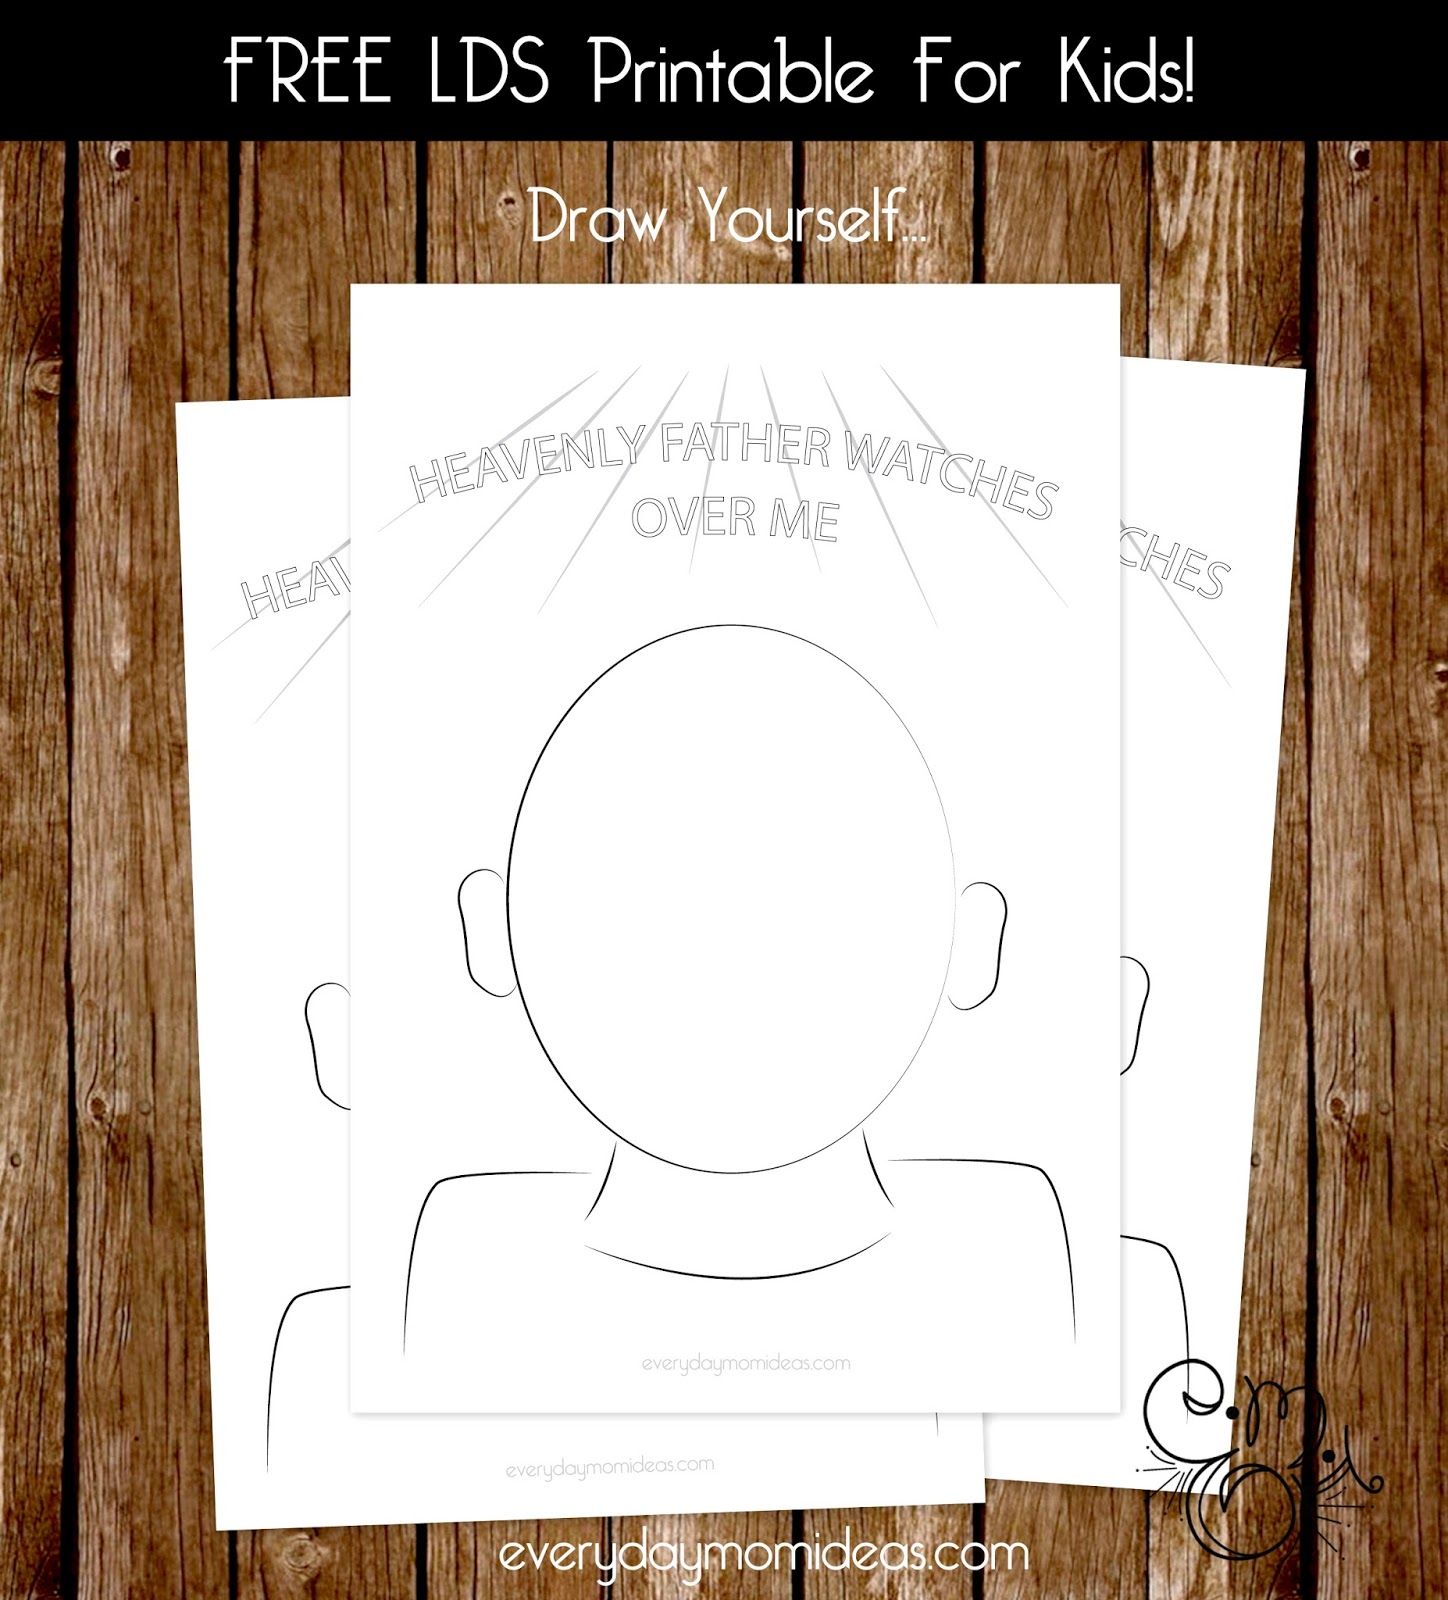 Lds Printable For Kids Heavenly Father Watches Over Me